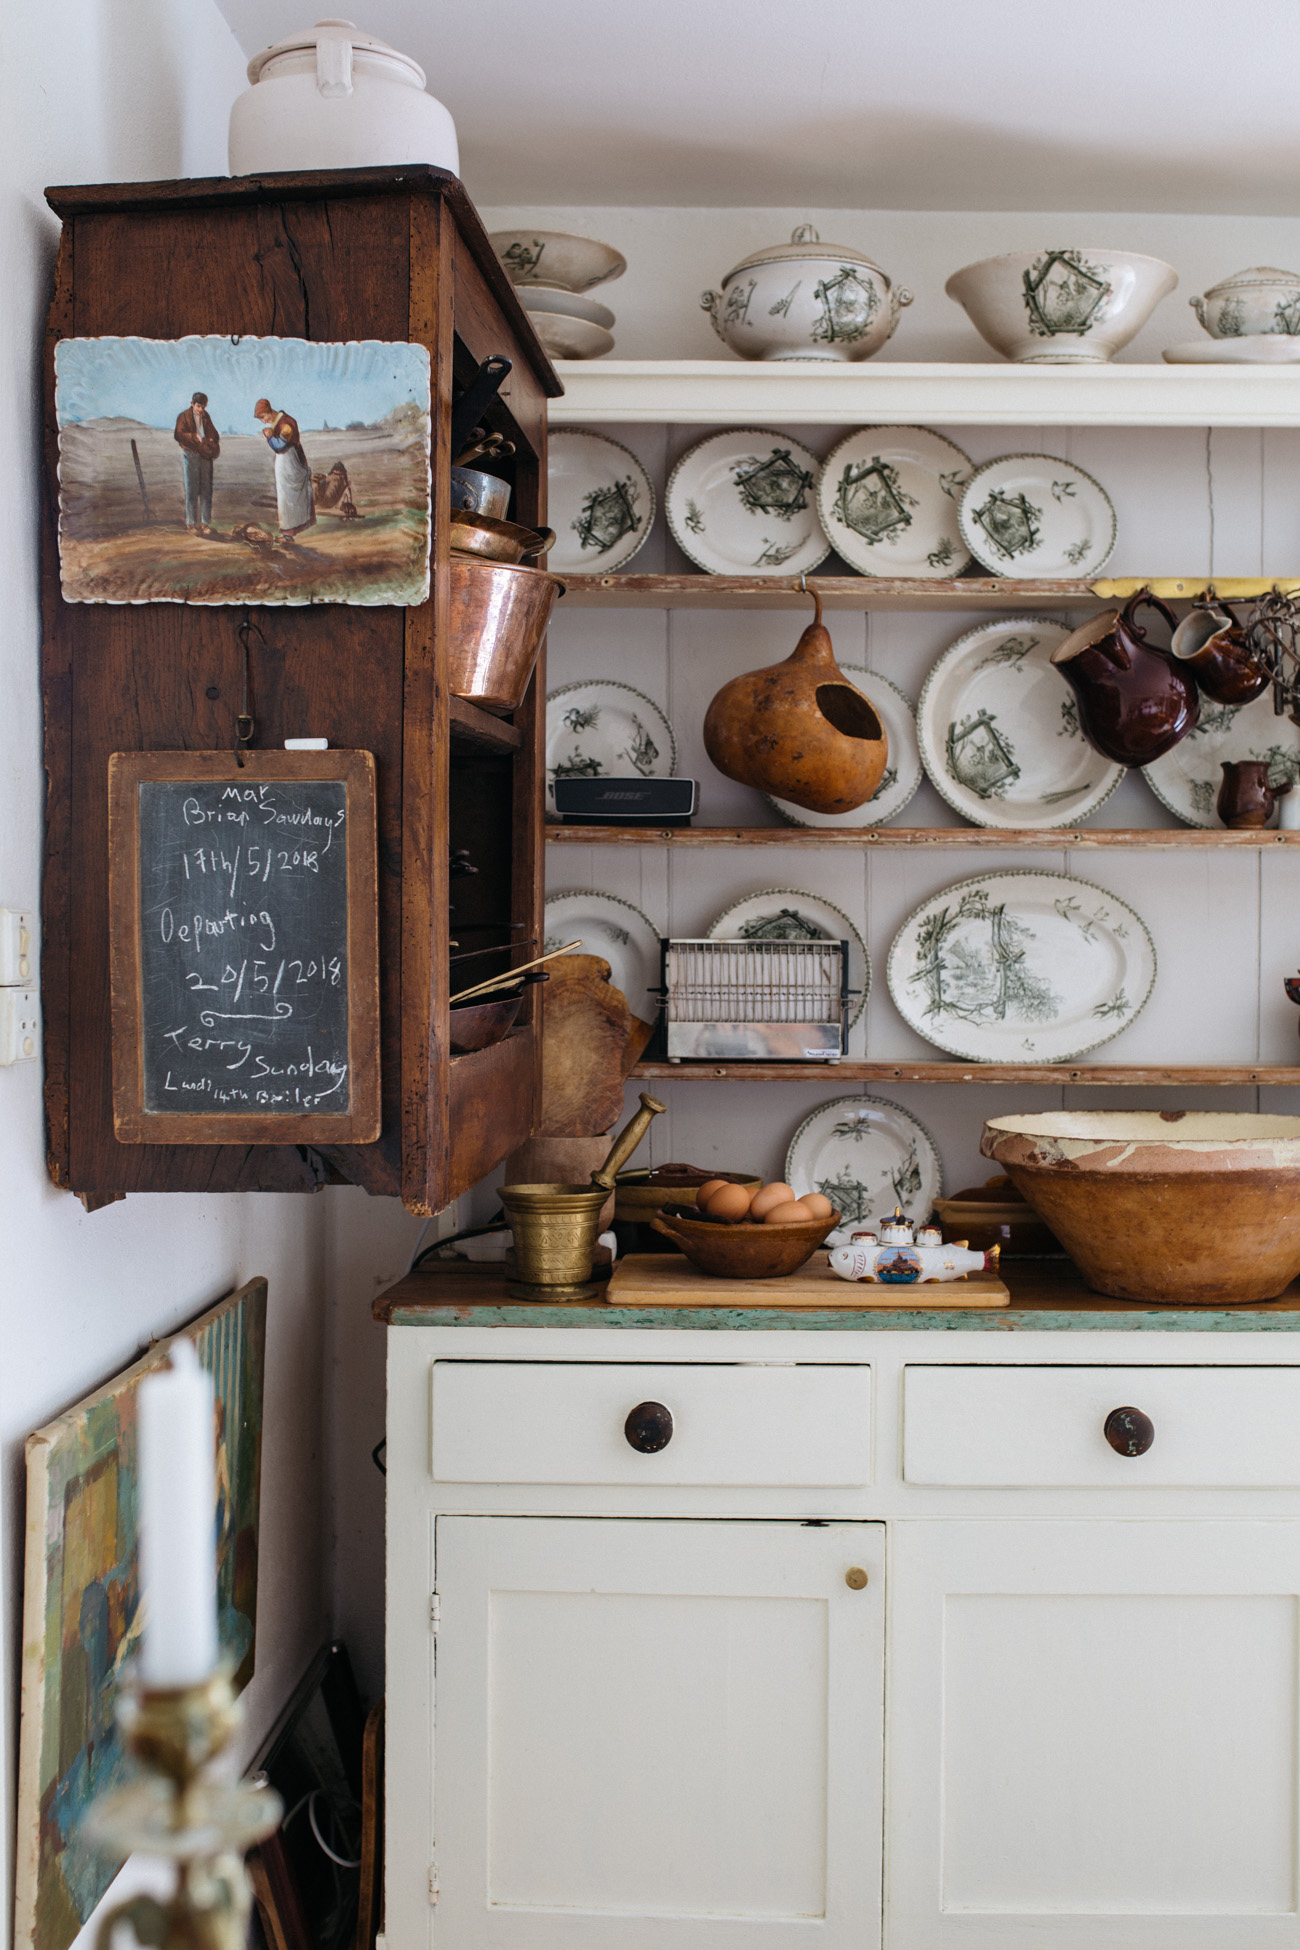 This gorgeous farmhouse kitchen is full of DIY elements and vintage pieces that bring the whole style together